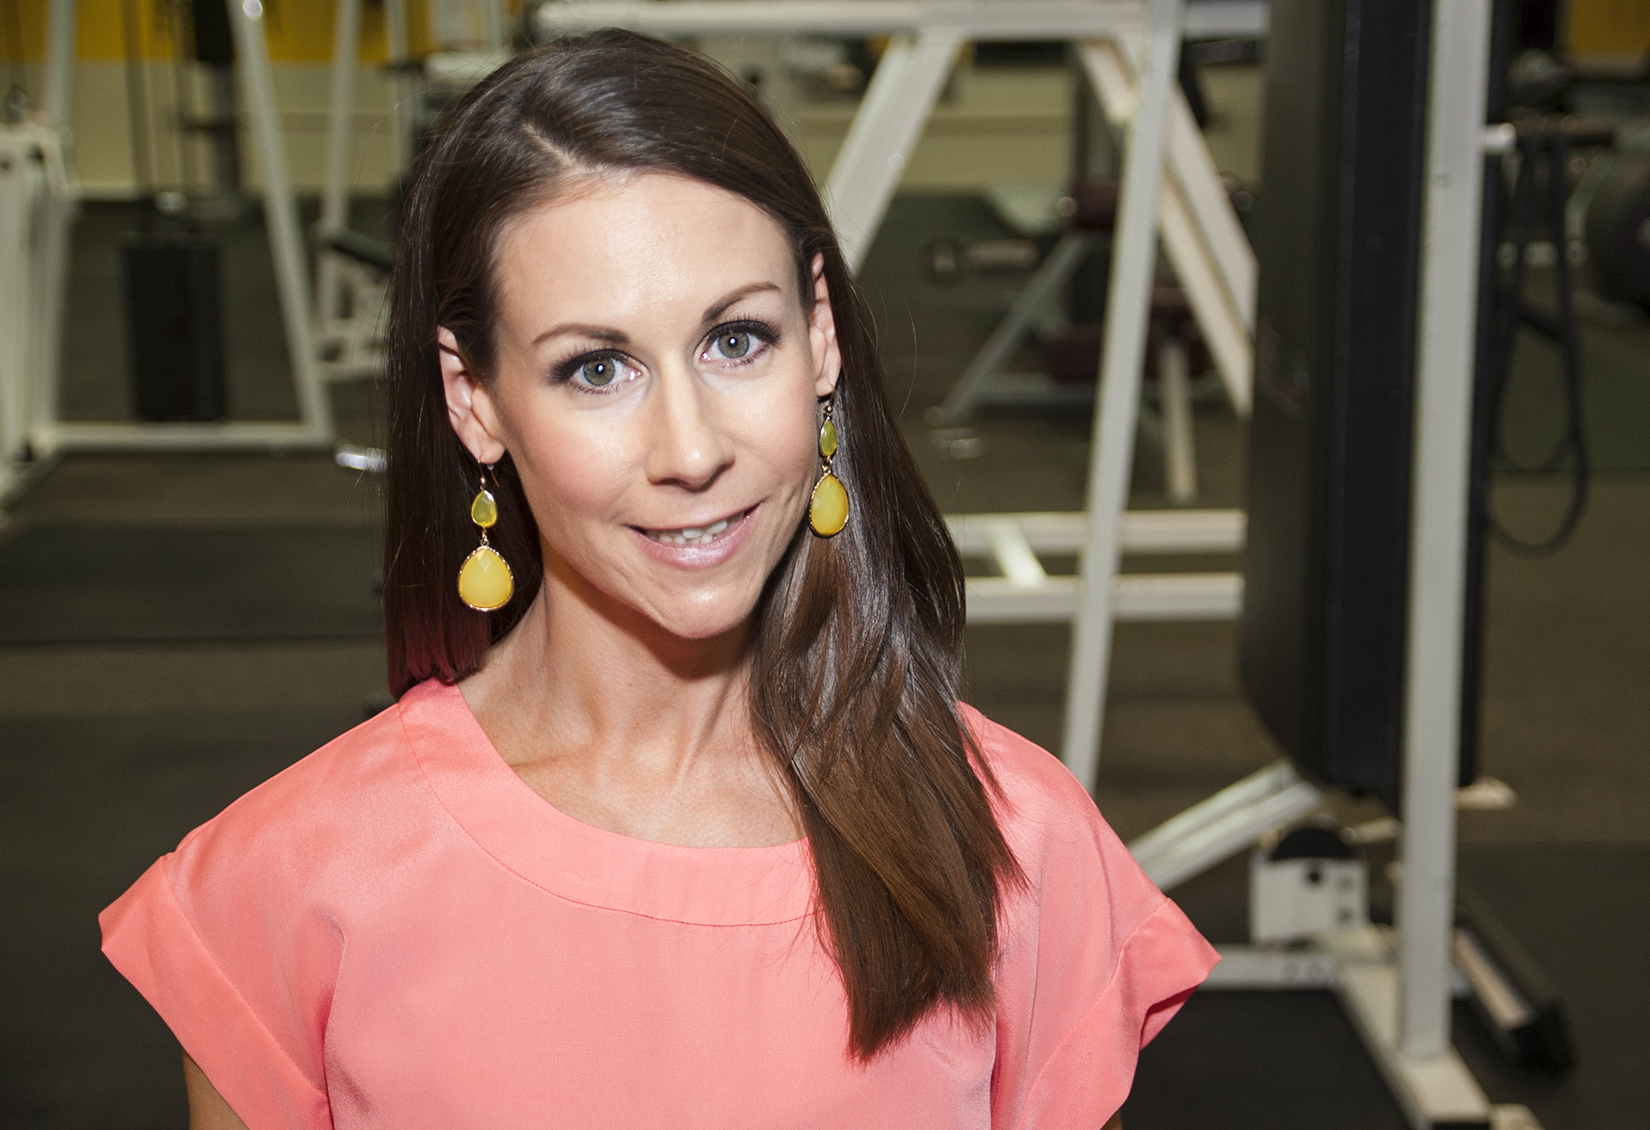 Spring Teller fell in love with fitness over 15 years ago and knew instantly that she wanted to help people achieve their personal best as a career. -